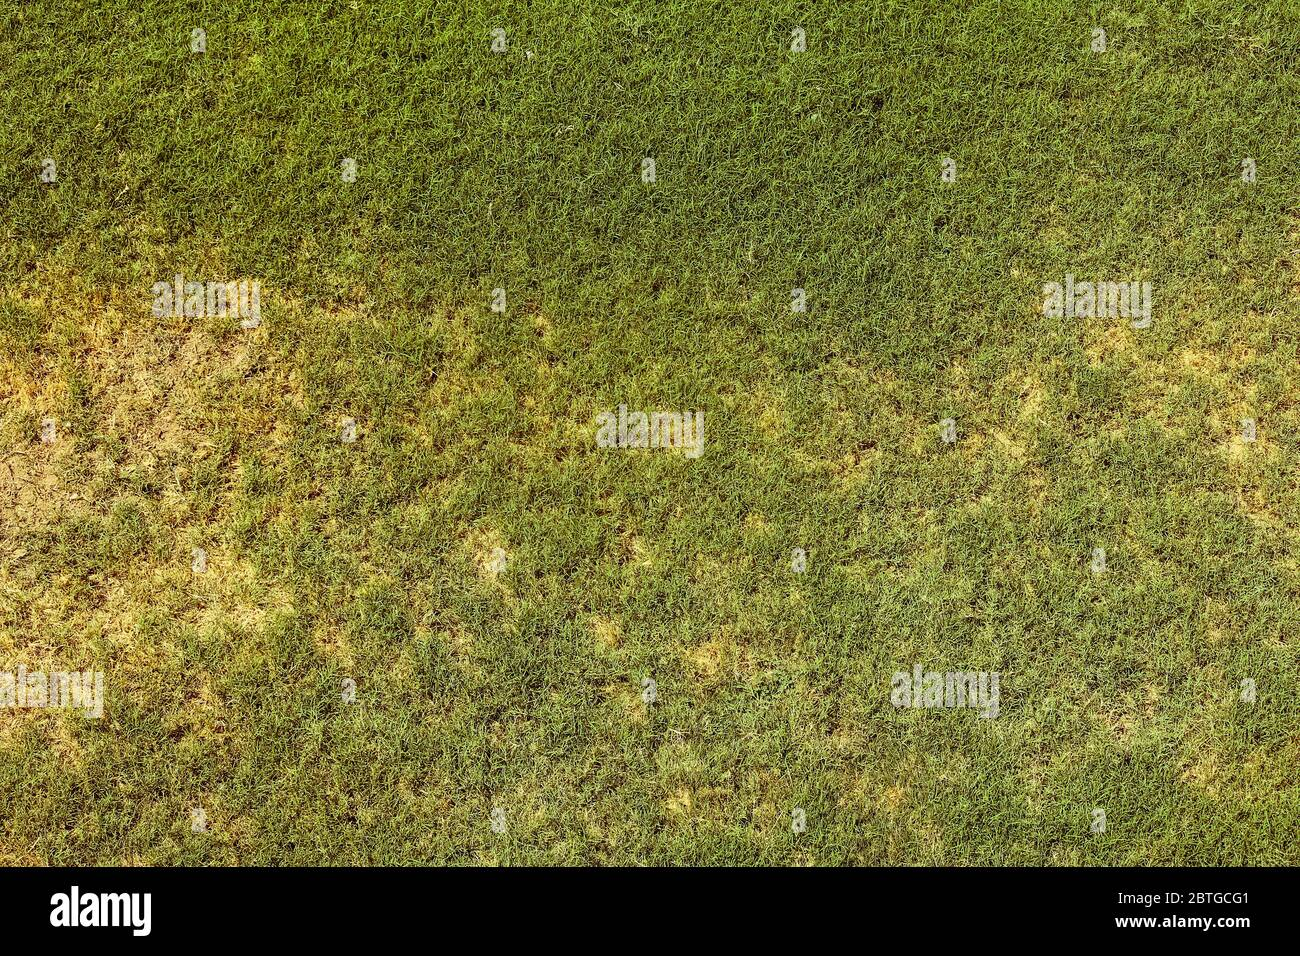 Top view of bright grass garden Idea concept used for making green backdrop, lawn for training football pitch, Grass Golf Courses green lawn pattern t Stock Photo